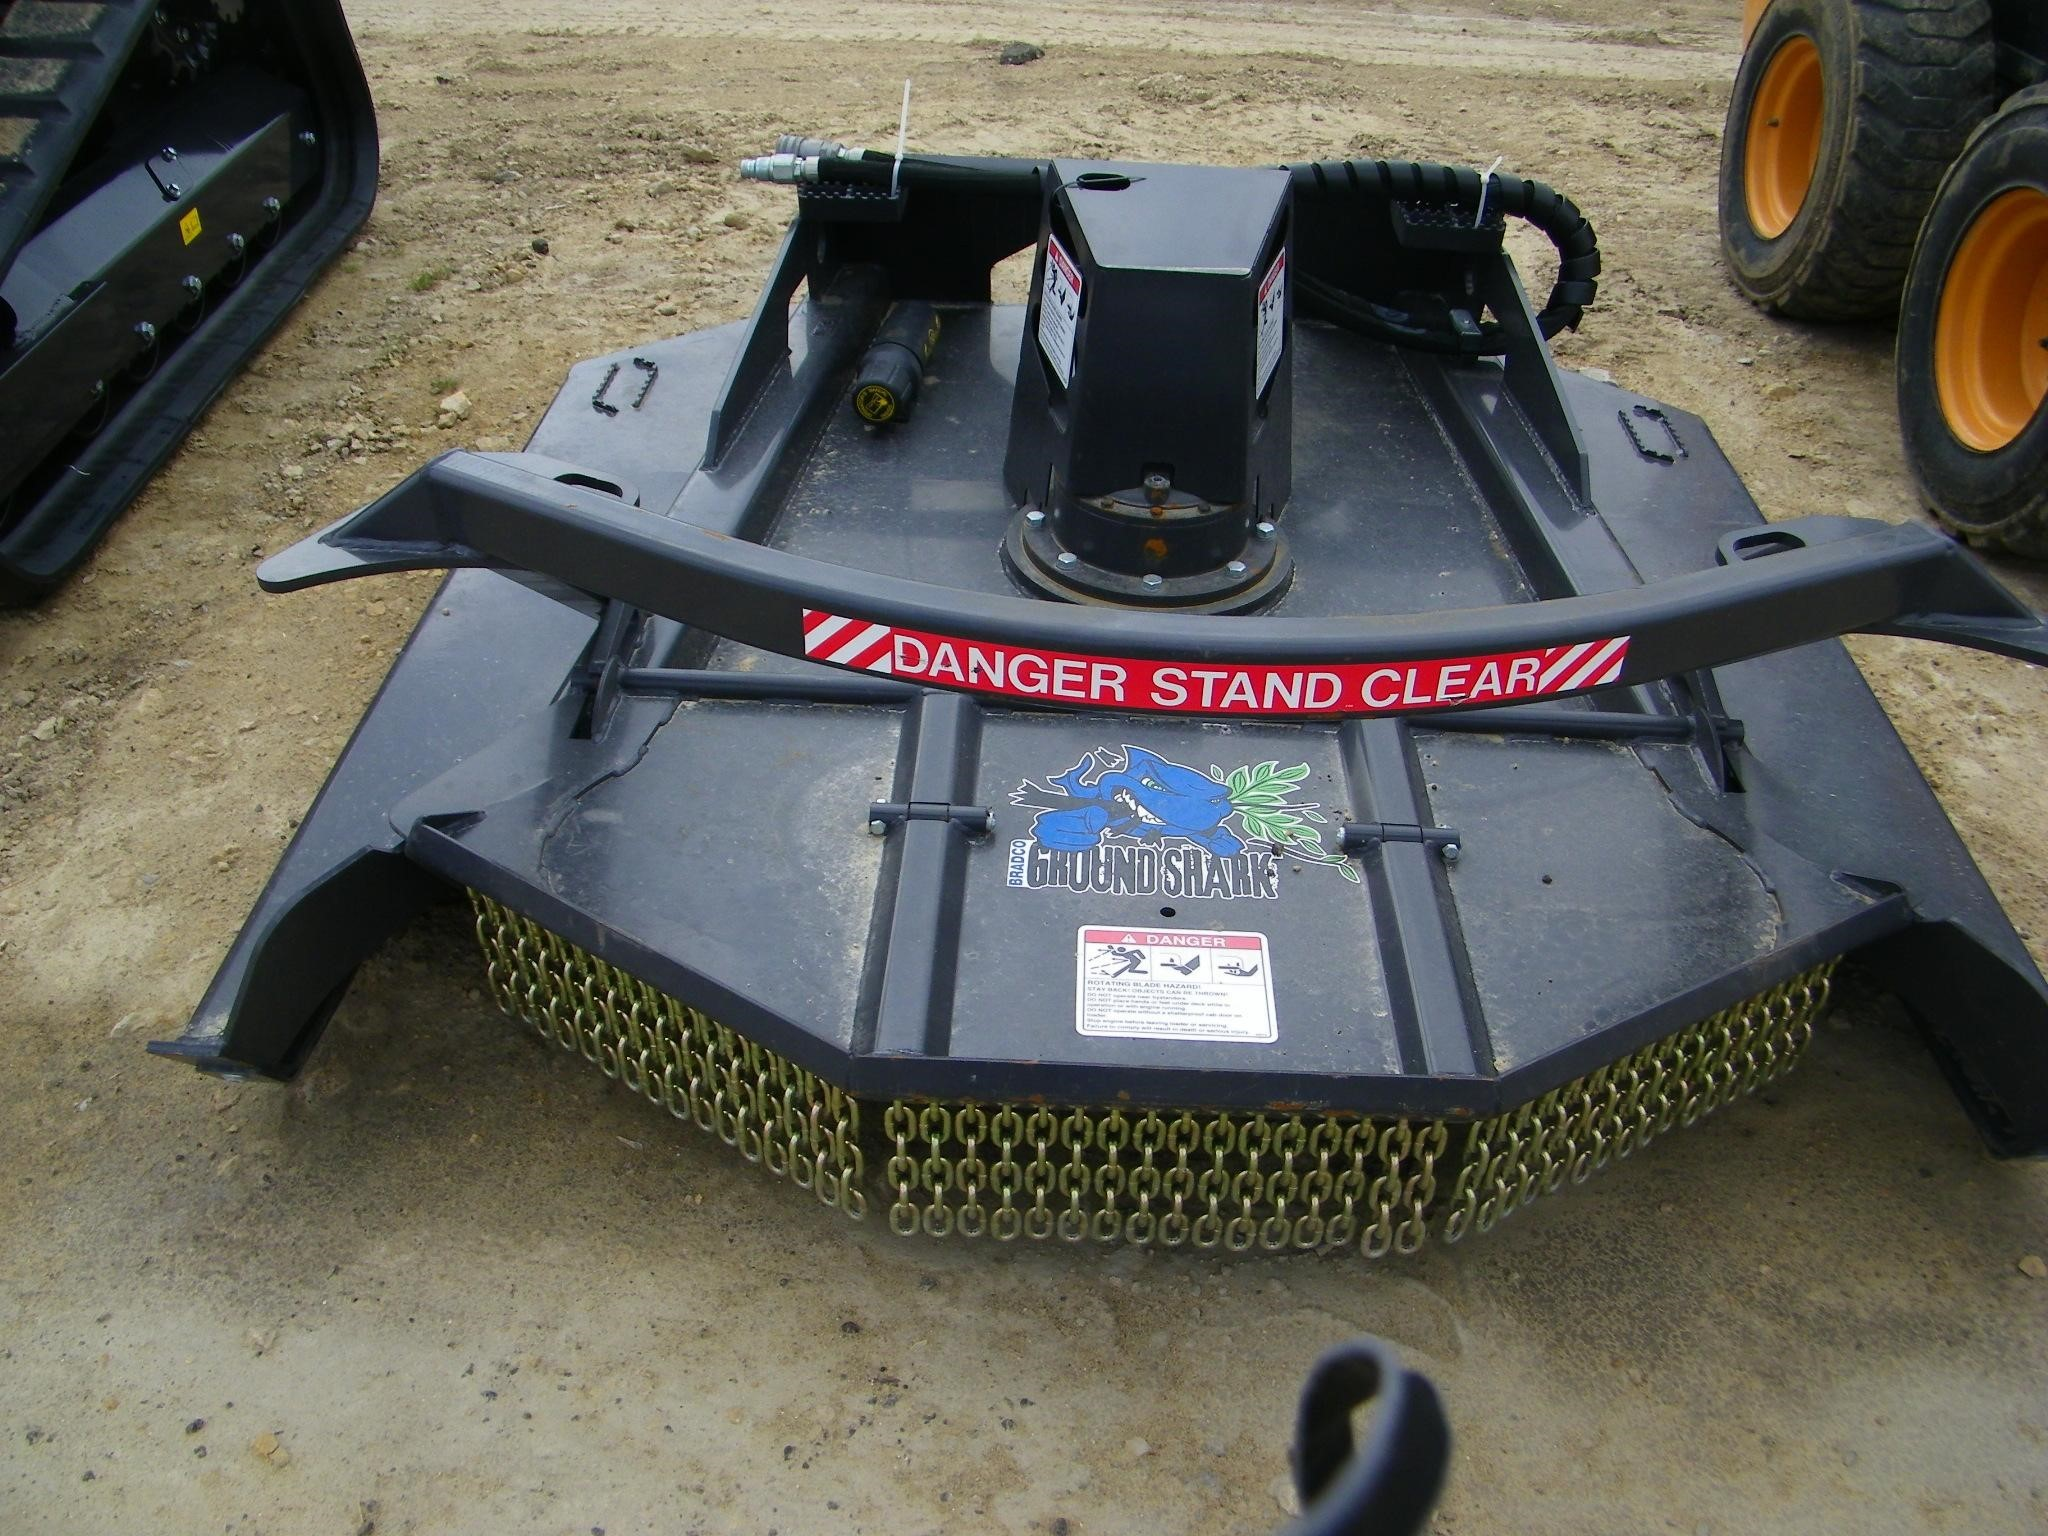 2019 Bradco Ground Shark Loader and Skid Steer Attachment